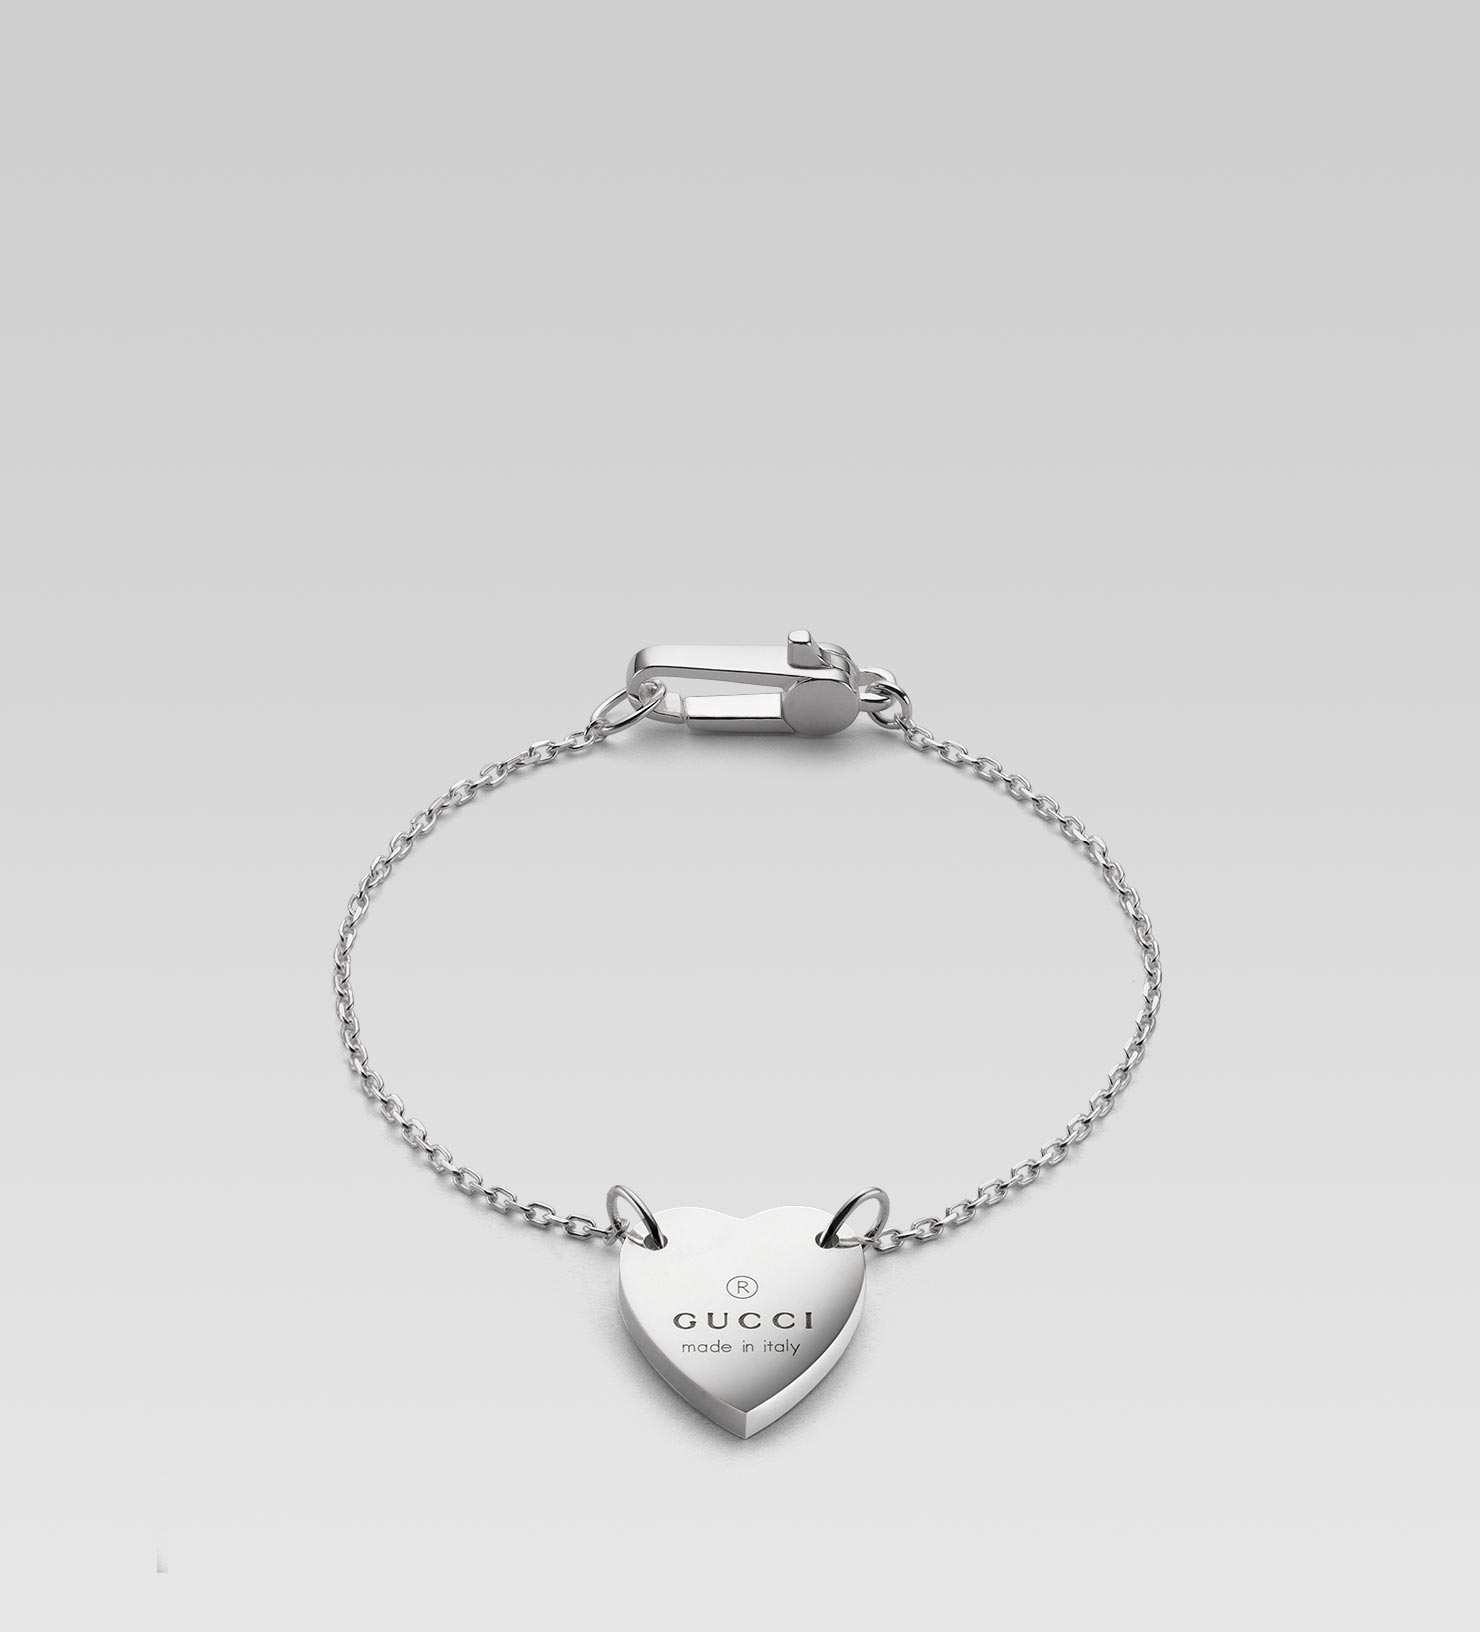 Bracelet With Hearts: Gucci Bracelet With Trademark Engraved Heart In Silver